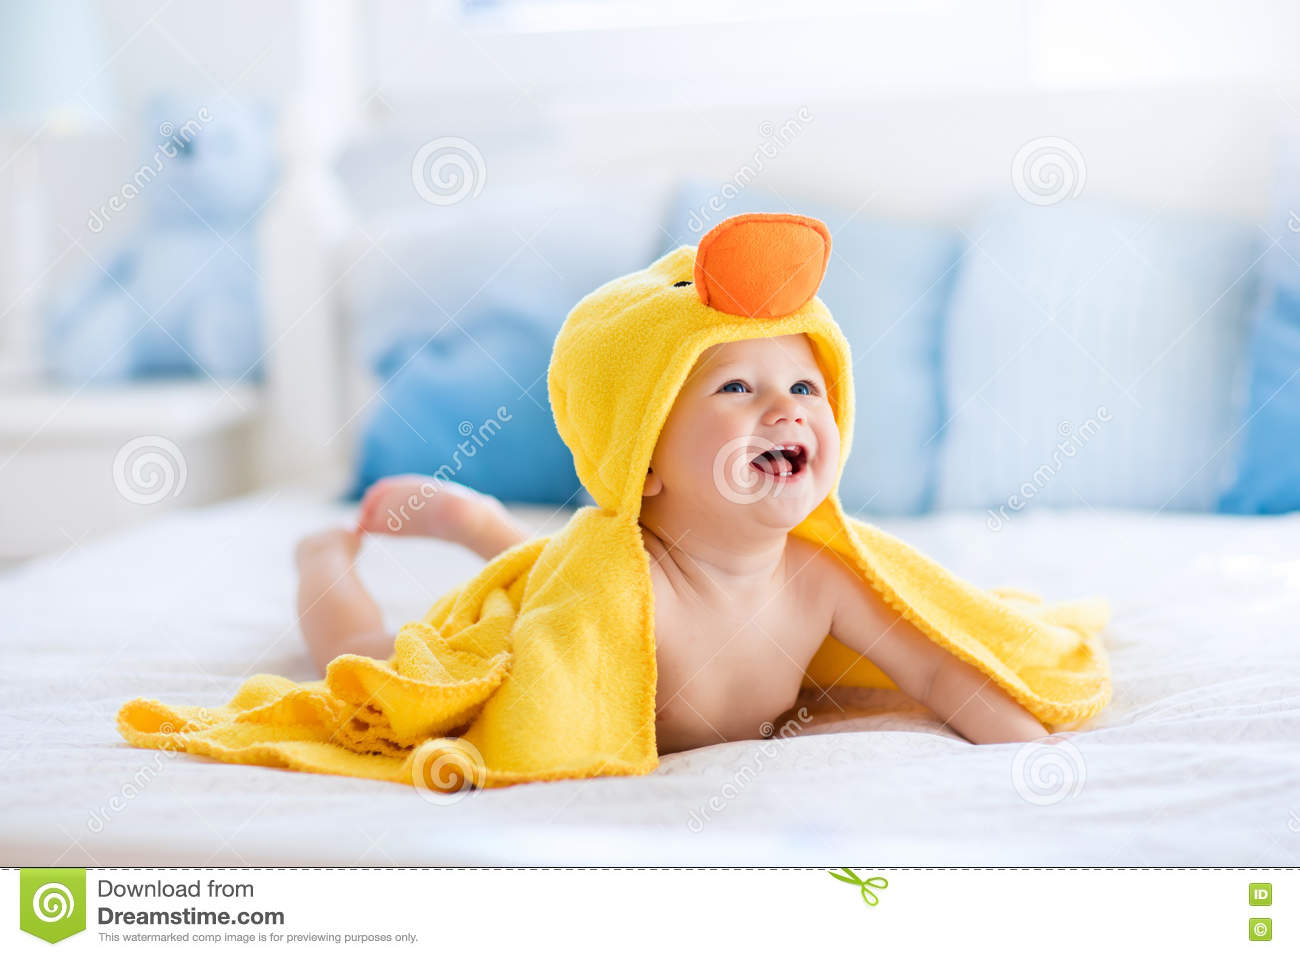 Cute Baby After Bath In Yellow Duck Towel Stock Image - Image of ...